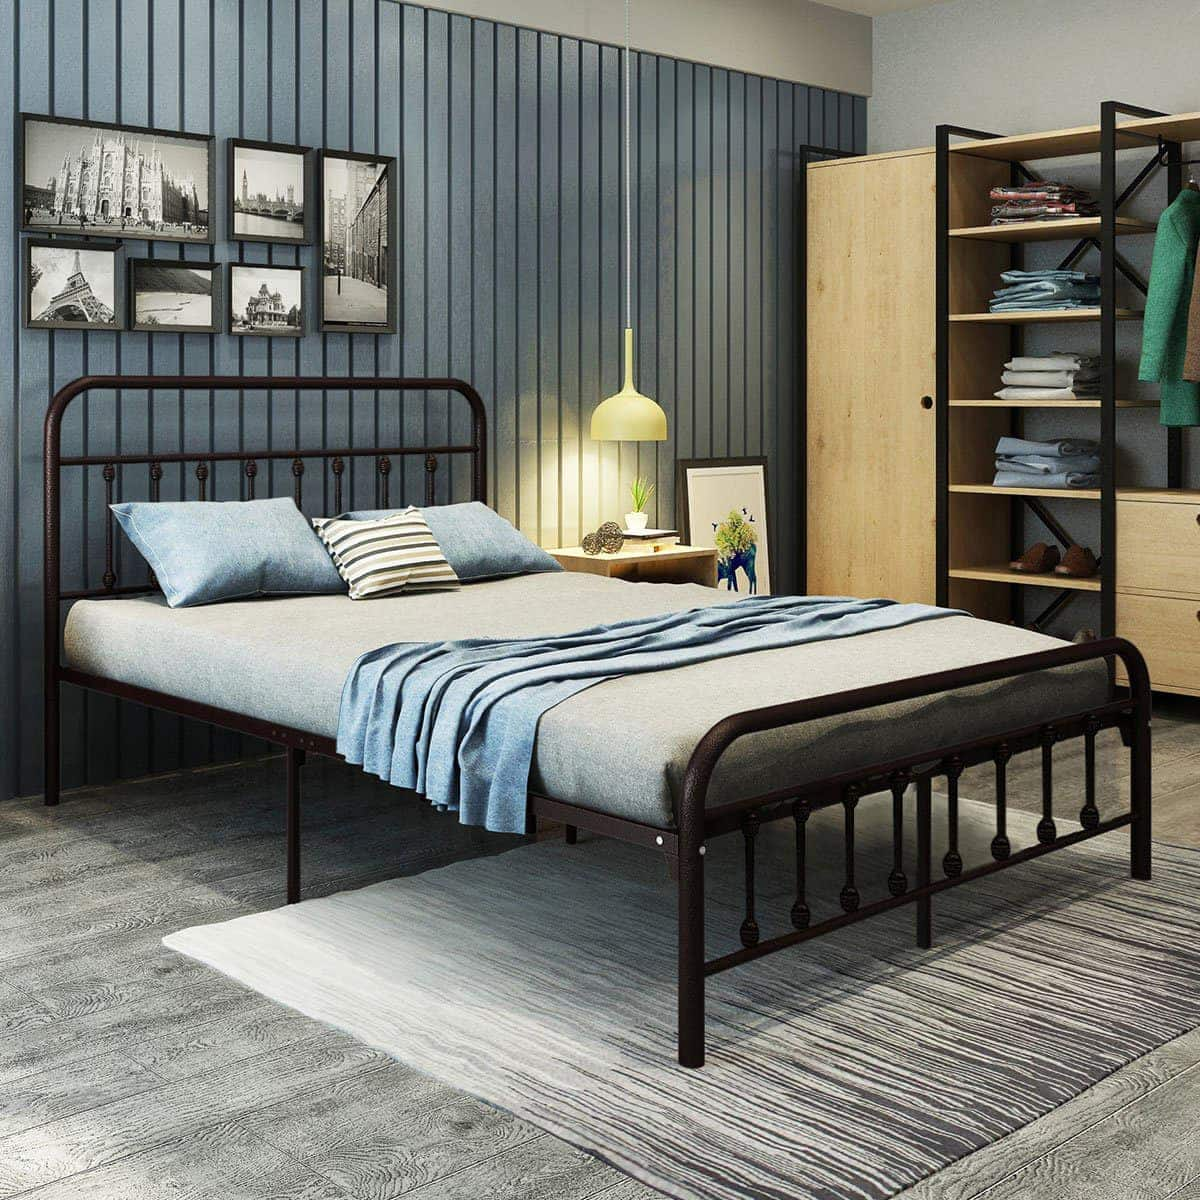 vintage black metal bed frame in teenage boys room with blue wallpaper and striped rug